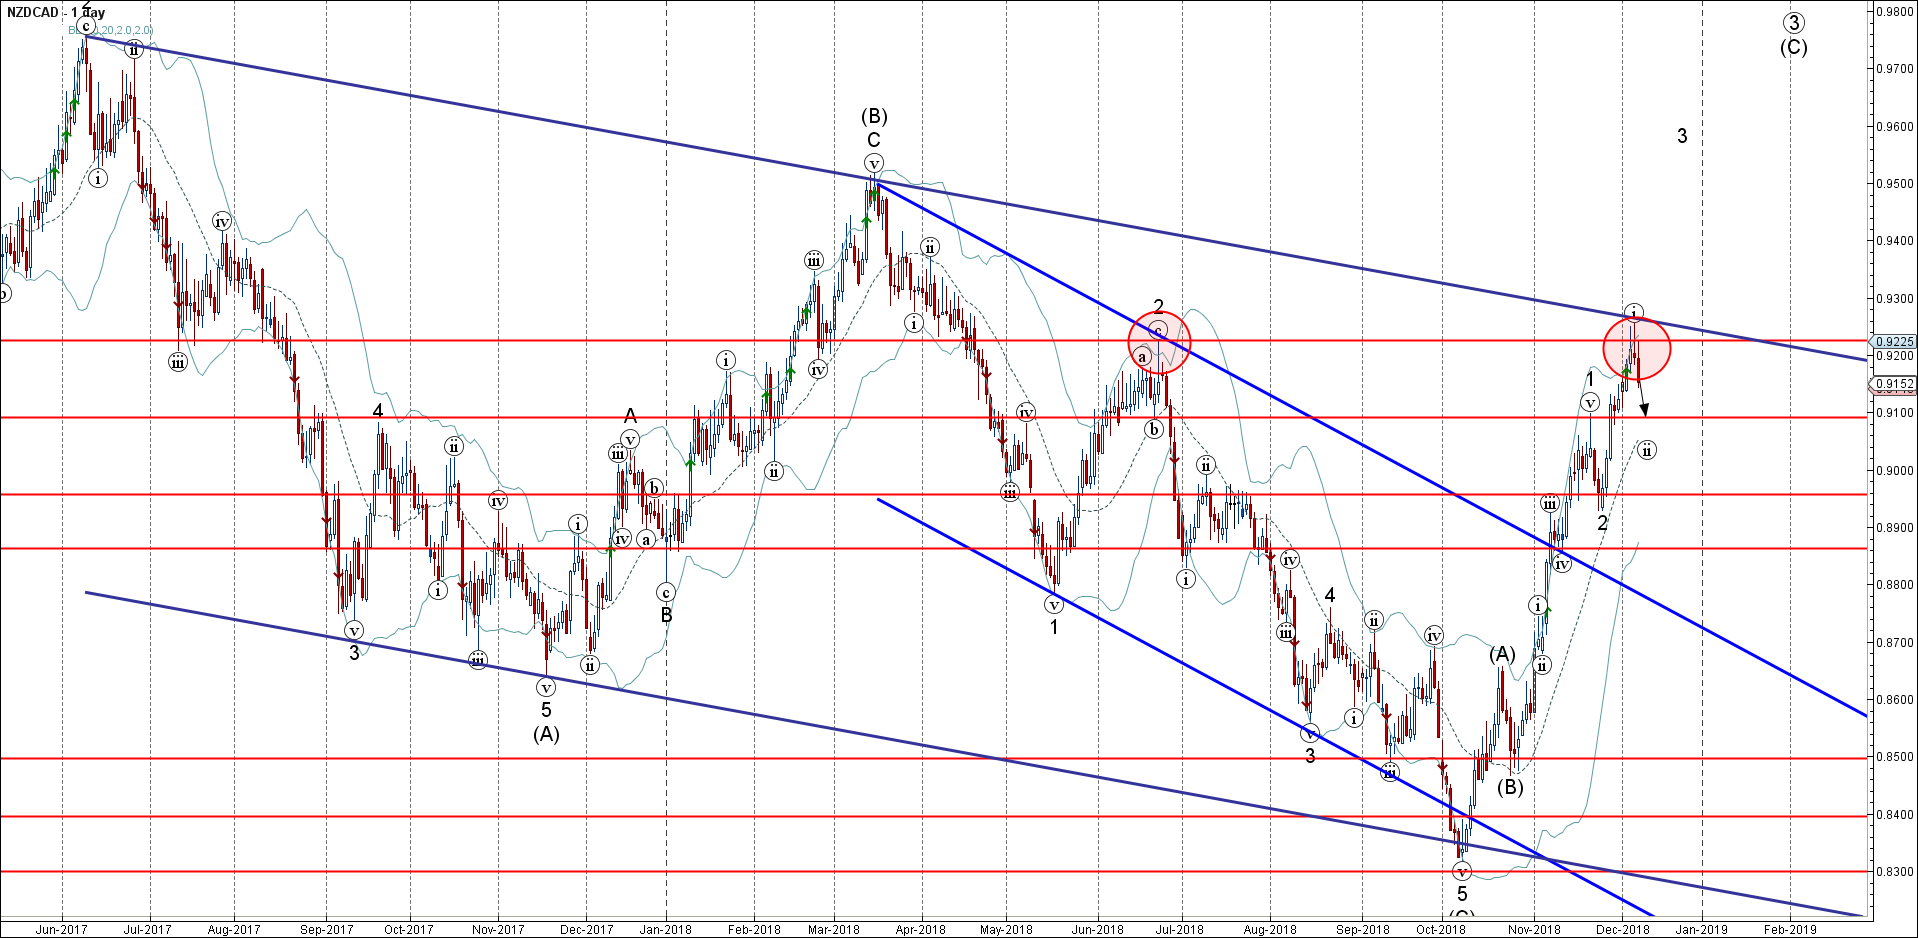 NZDCAD reversed from resistance area